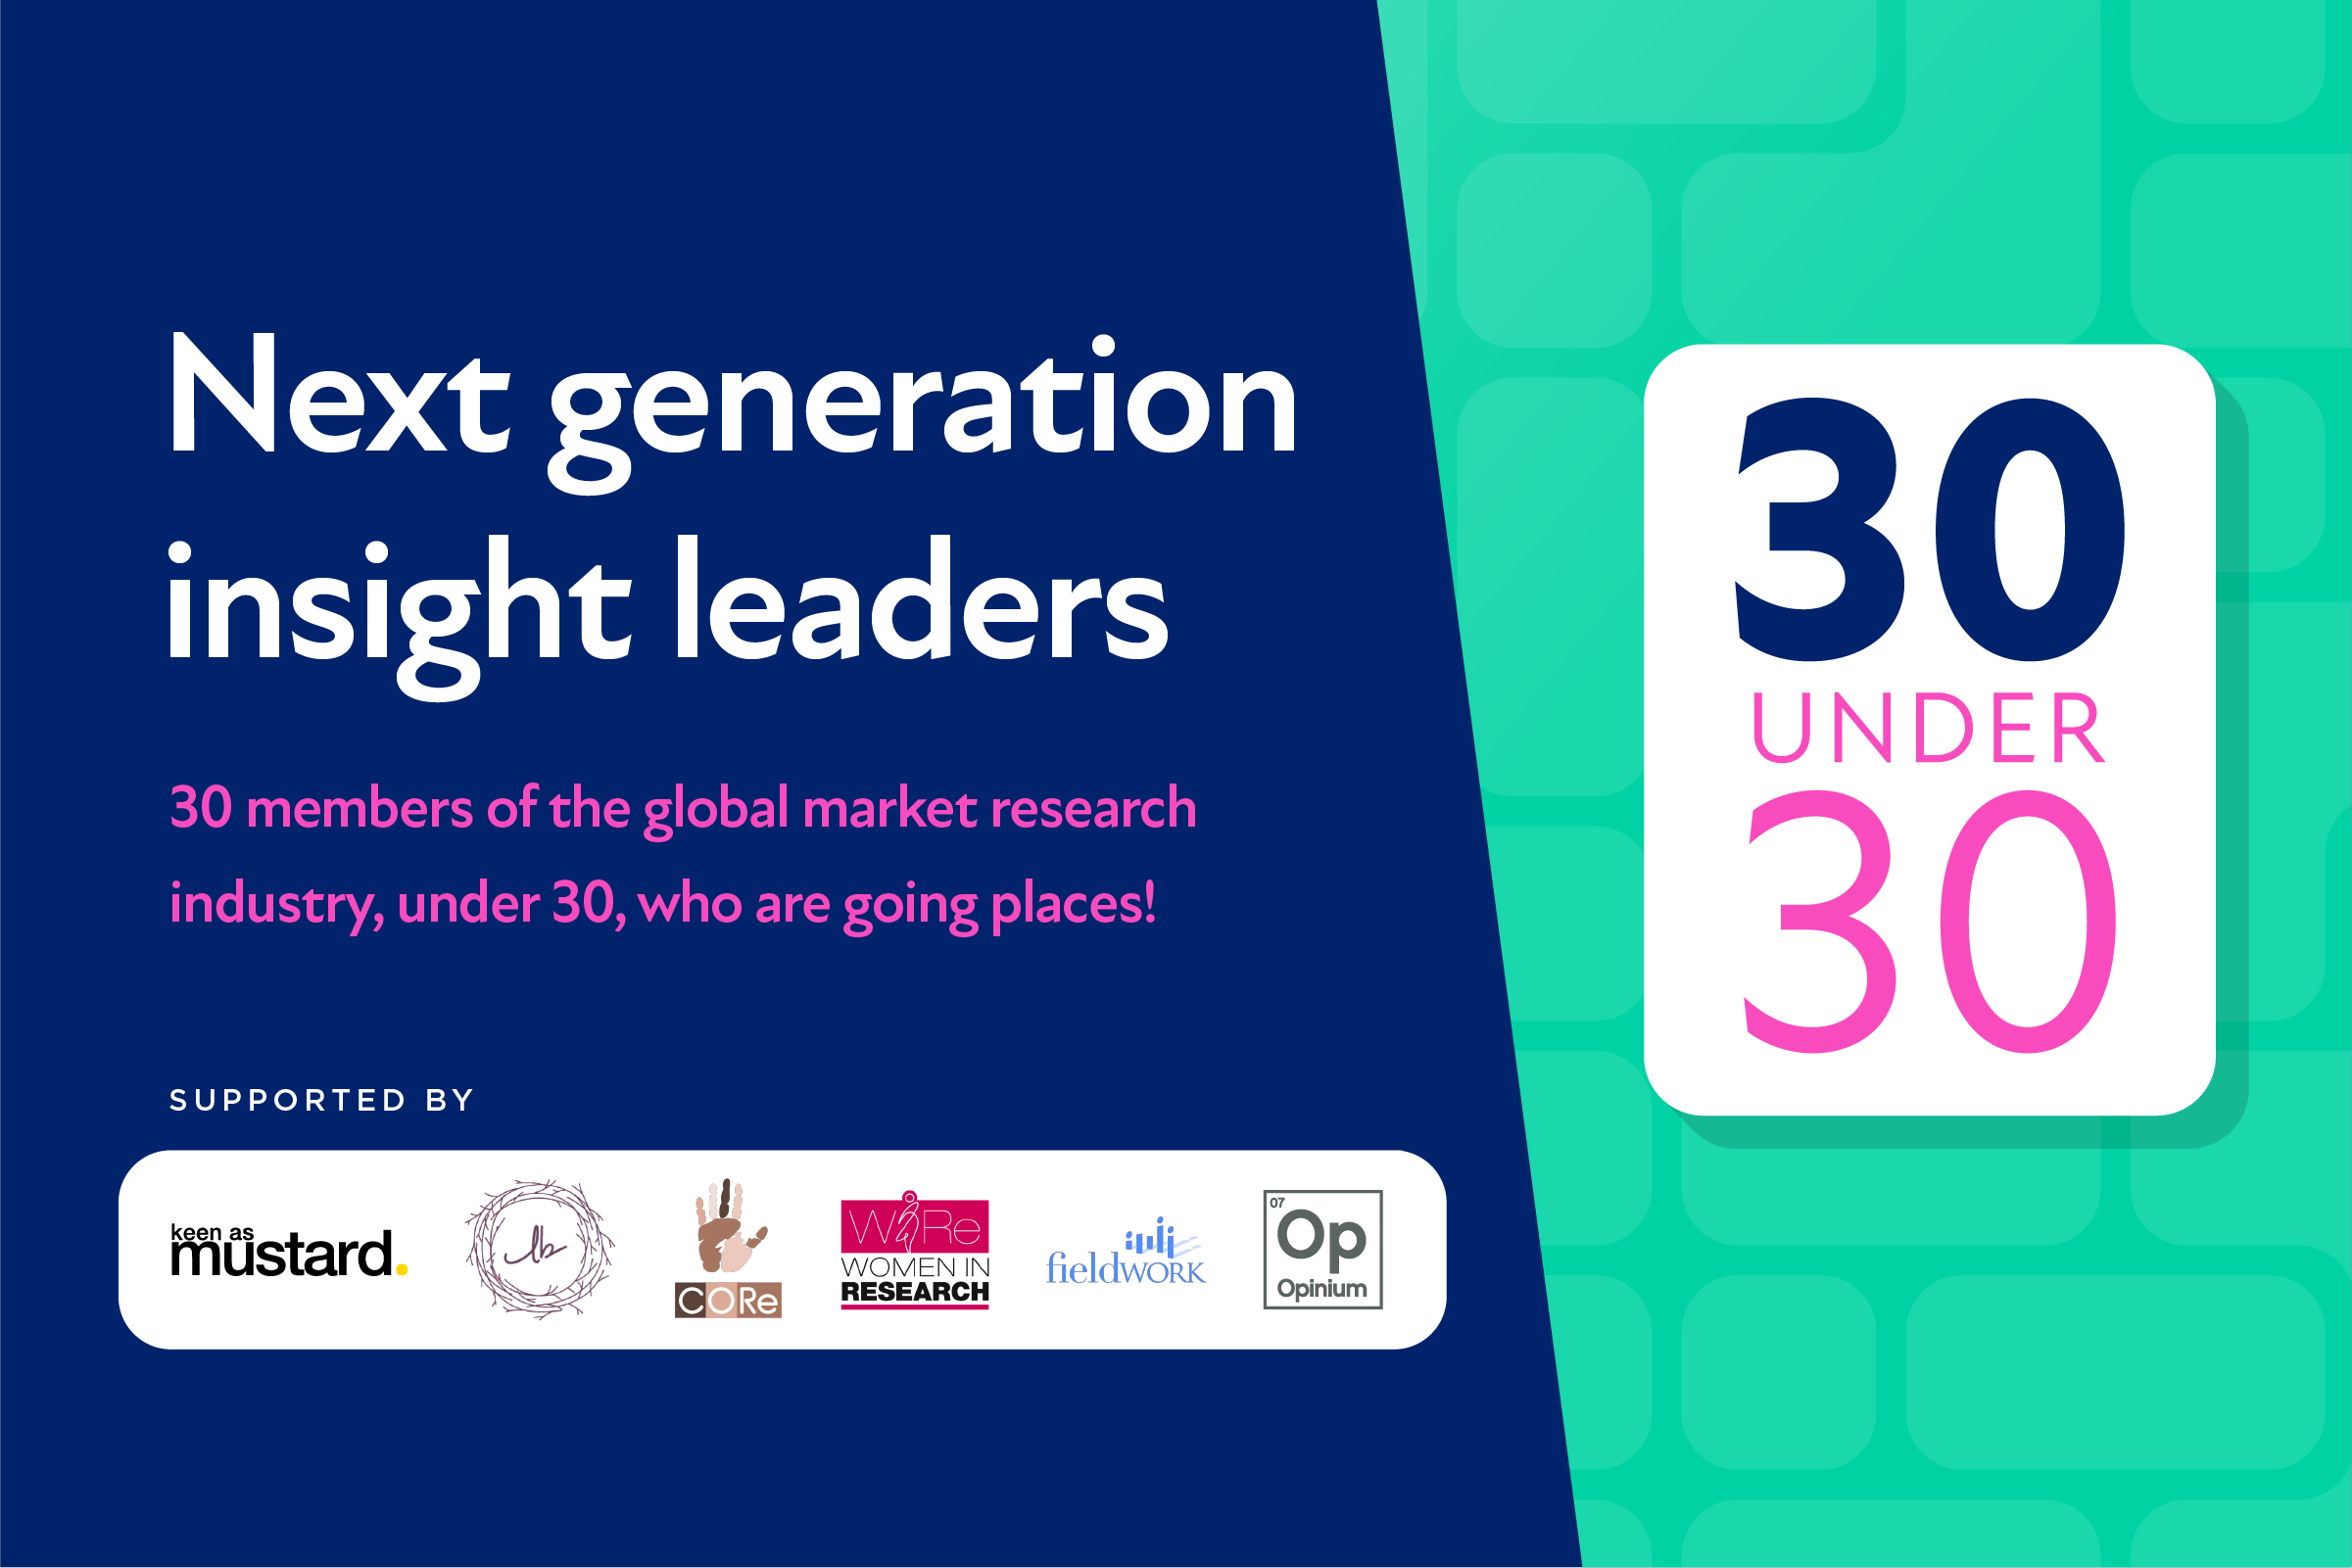 Significant Insights' Global 30 Under 30